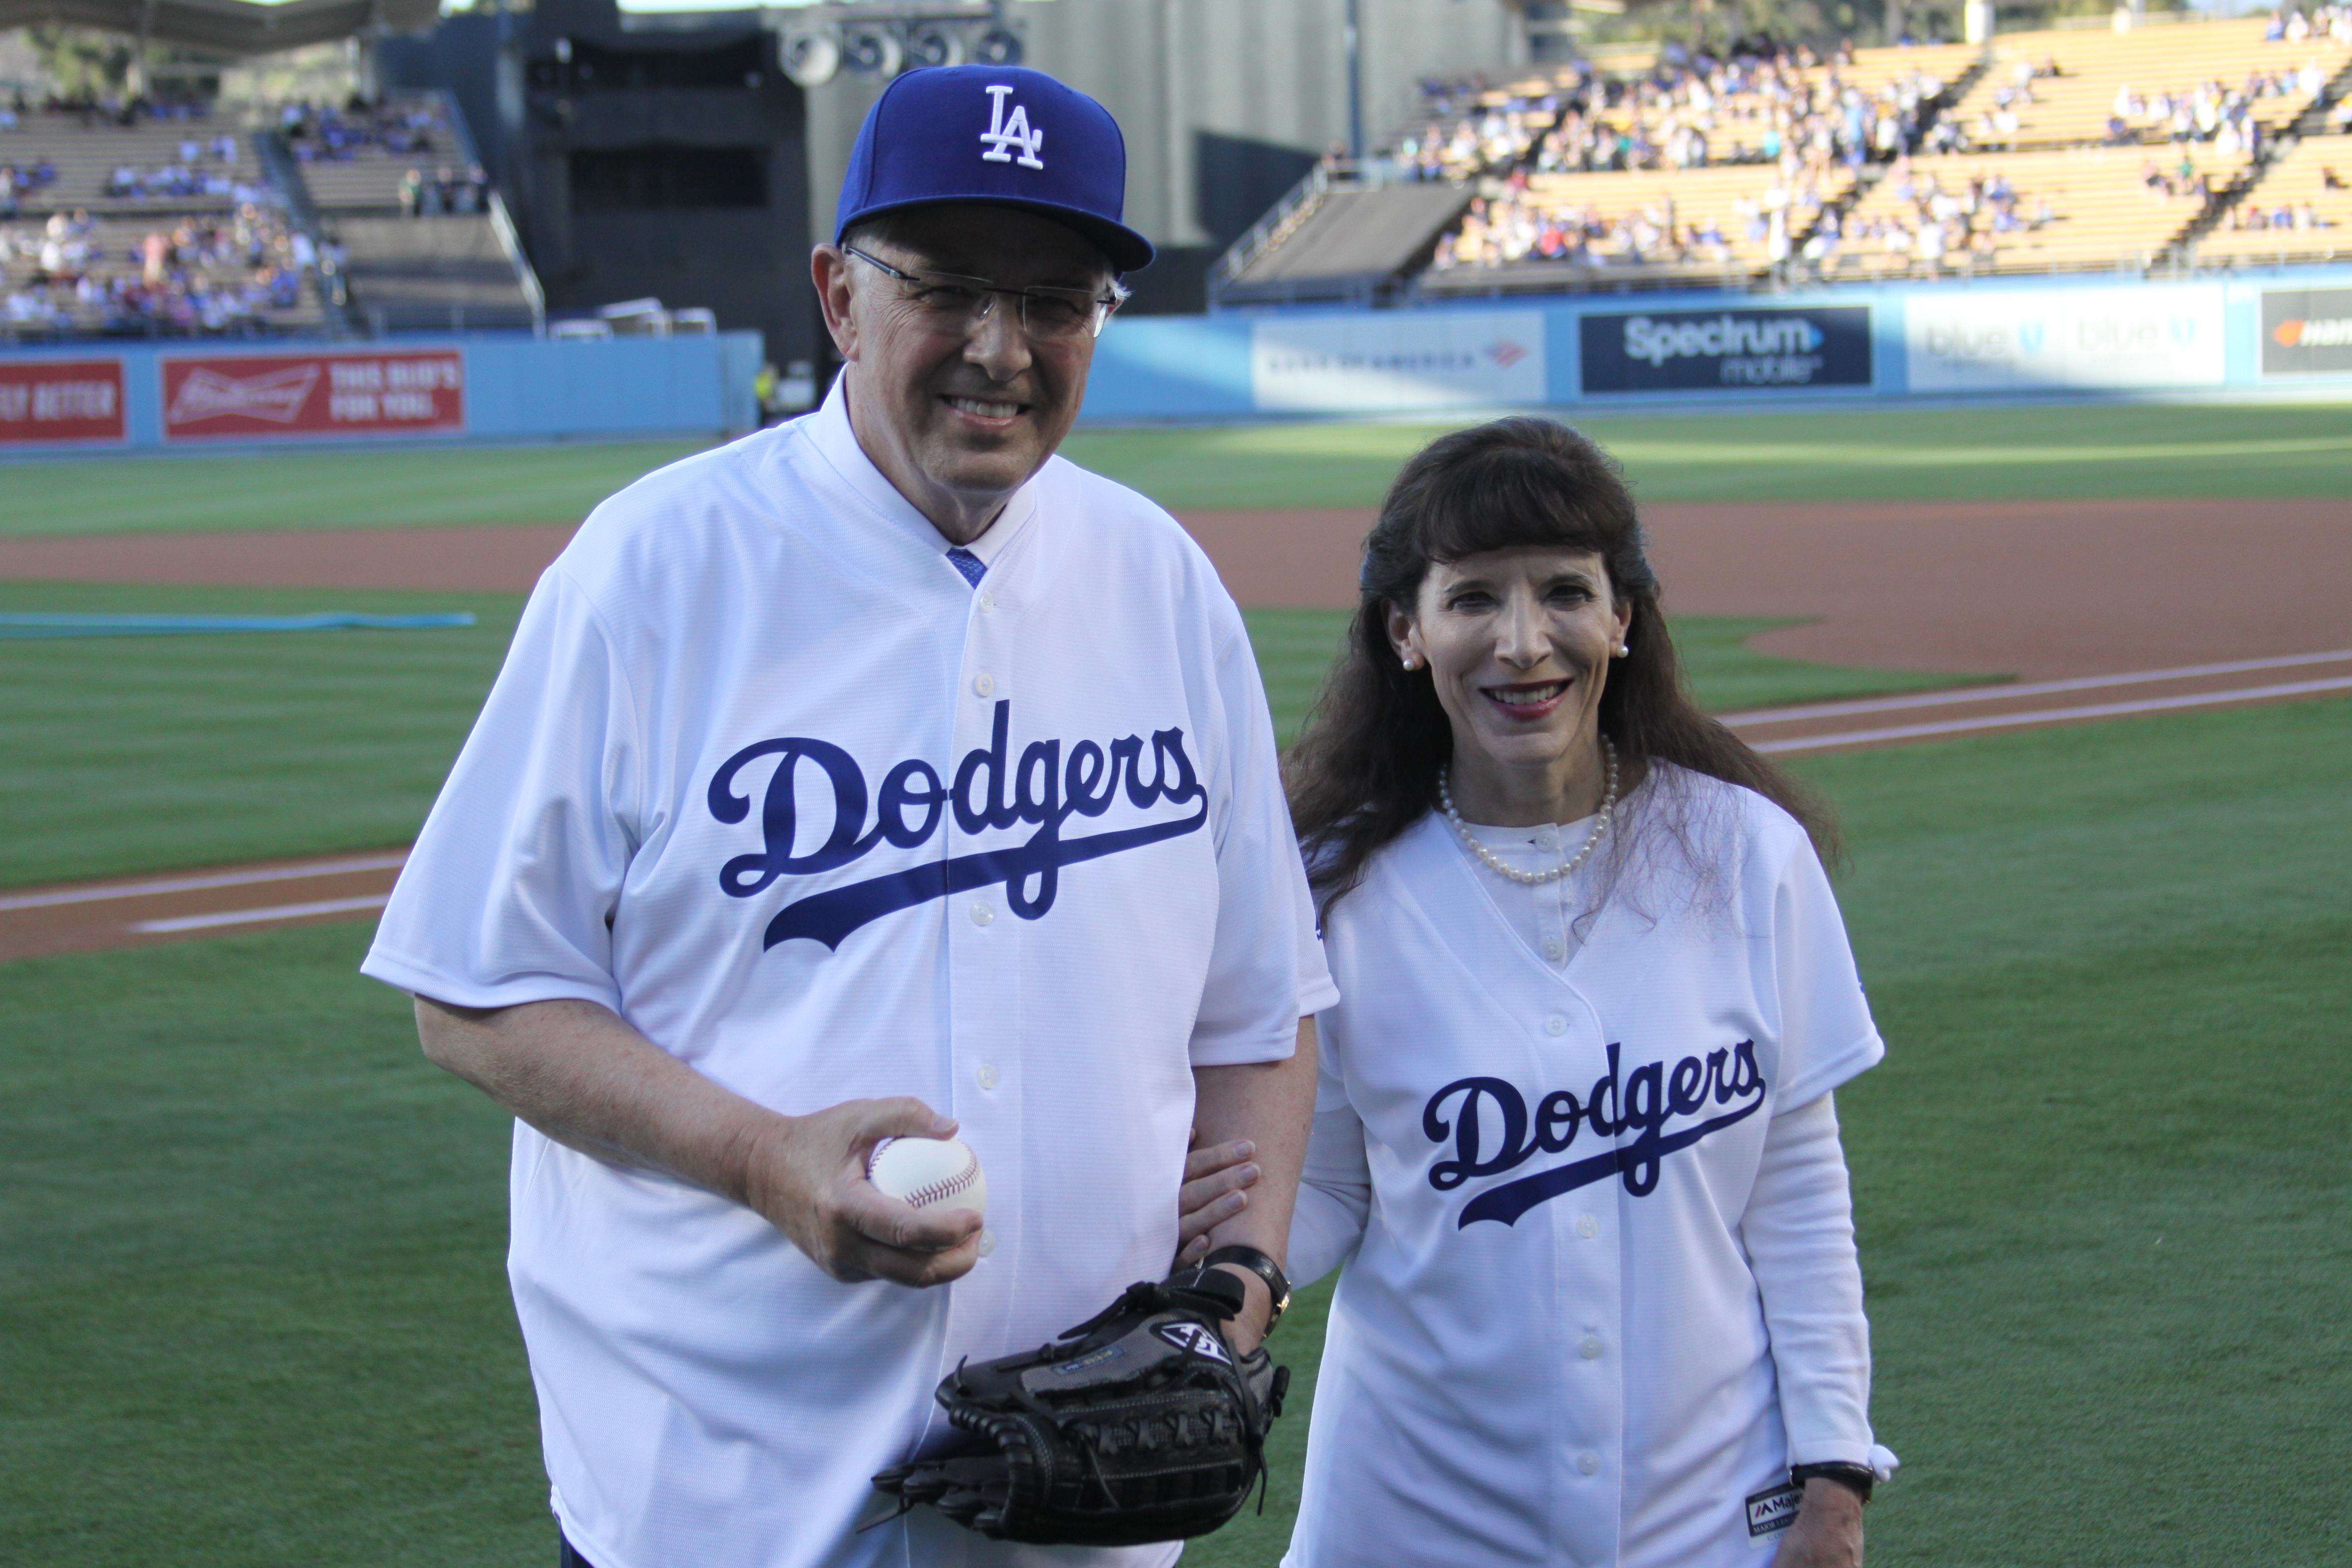 Elder Neil L. Andersen and his wife, Sister Kathy Andersen, on the field after Elder Andersen threw the first pitch at Dodger Stadium on July 19, 2019.